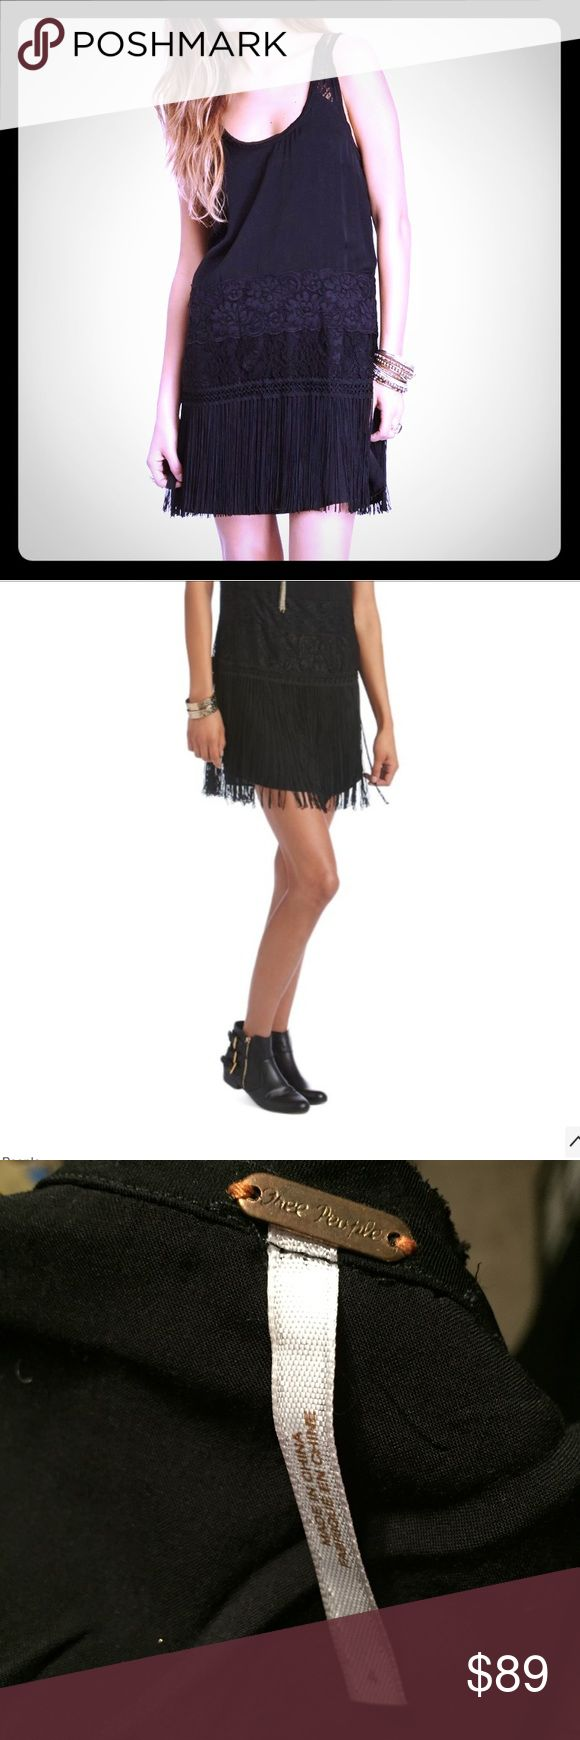 FREE PEOPLE charleston fringe black shift dress Lace and fringe detailing make this little black dress stand out. A beautiful piece only worn once in near perfect condition!! Free People Dresses Mini